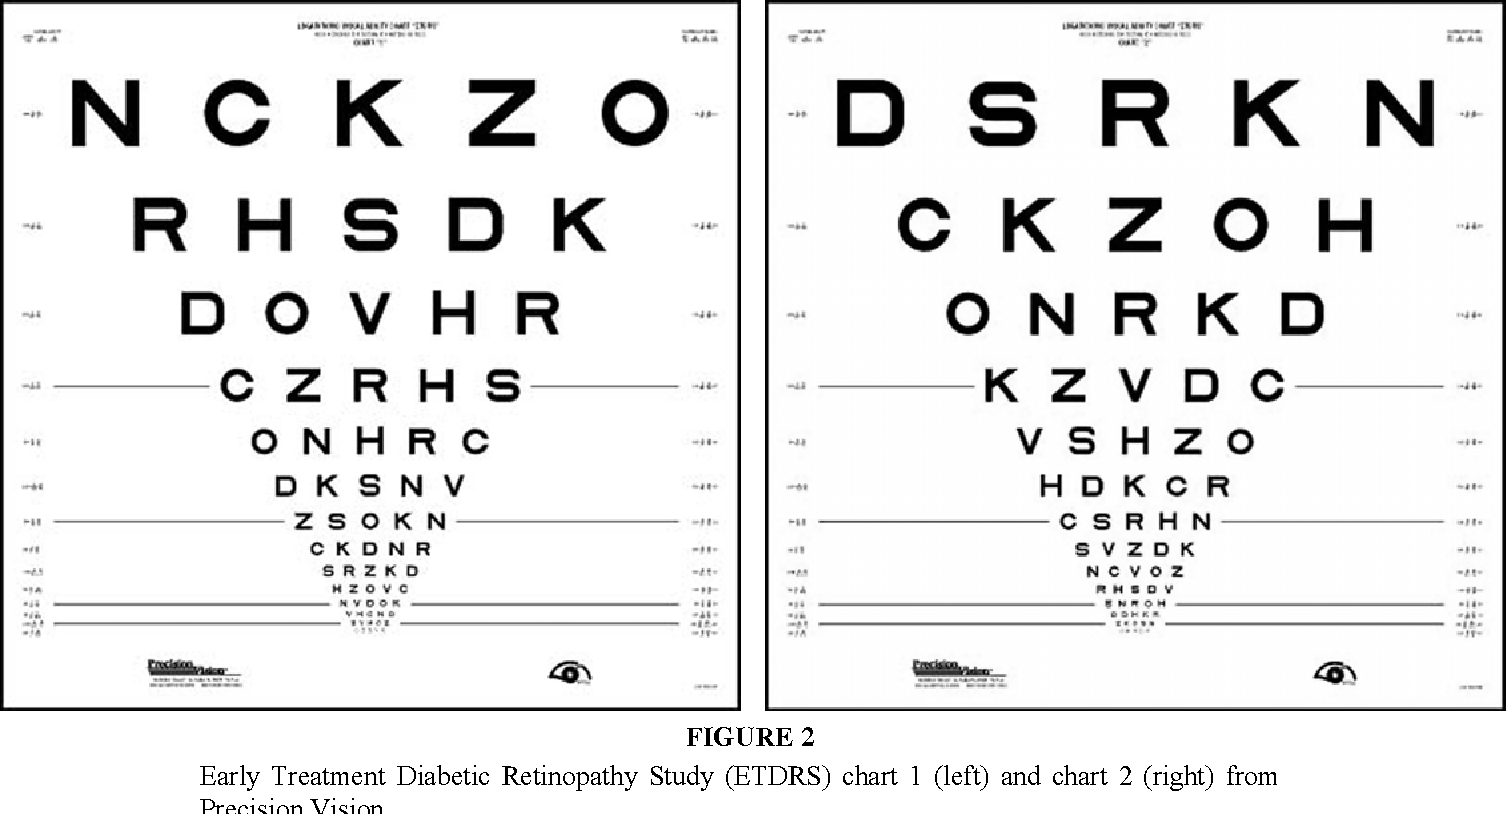 Prospective evaluation of visual acuity assessment a comparison figure 2 nvjuhfo Choice Image